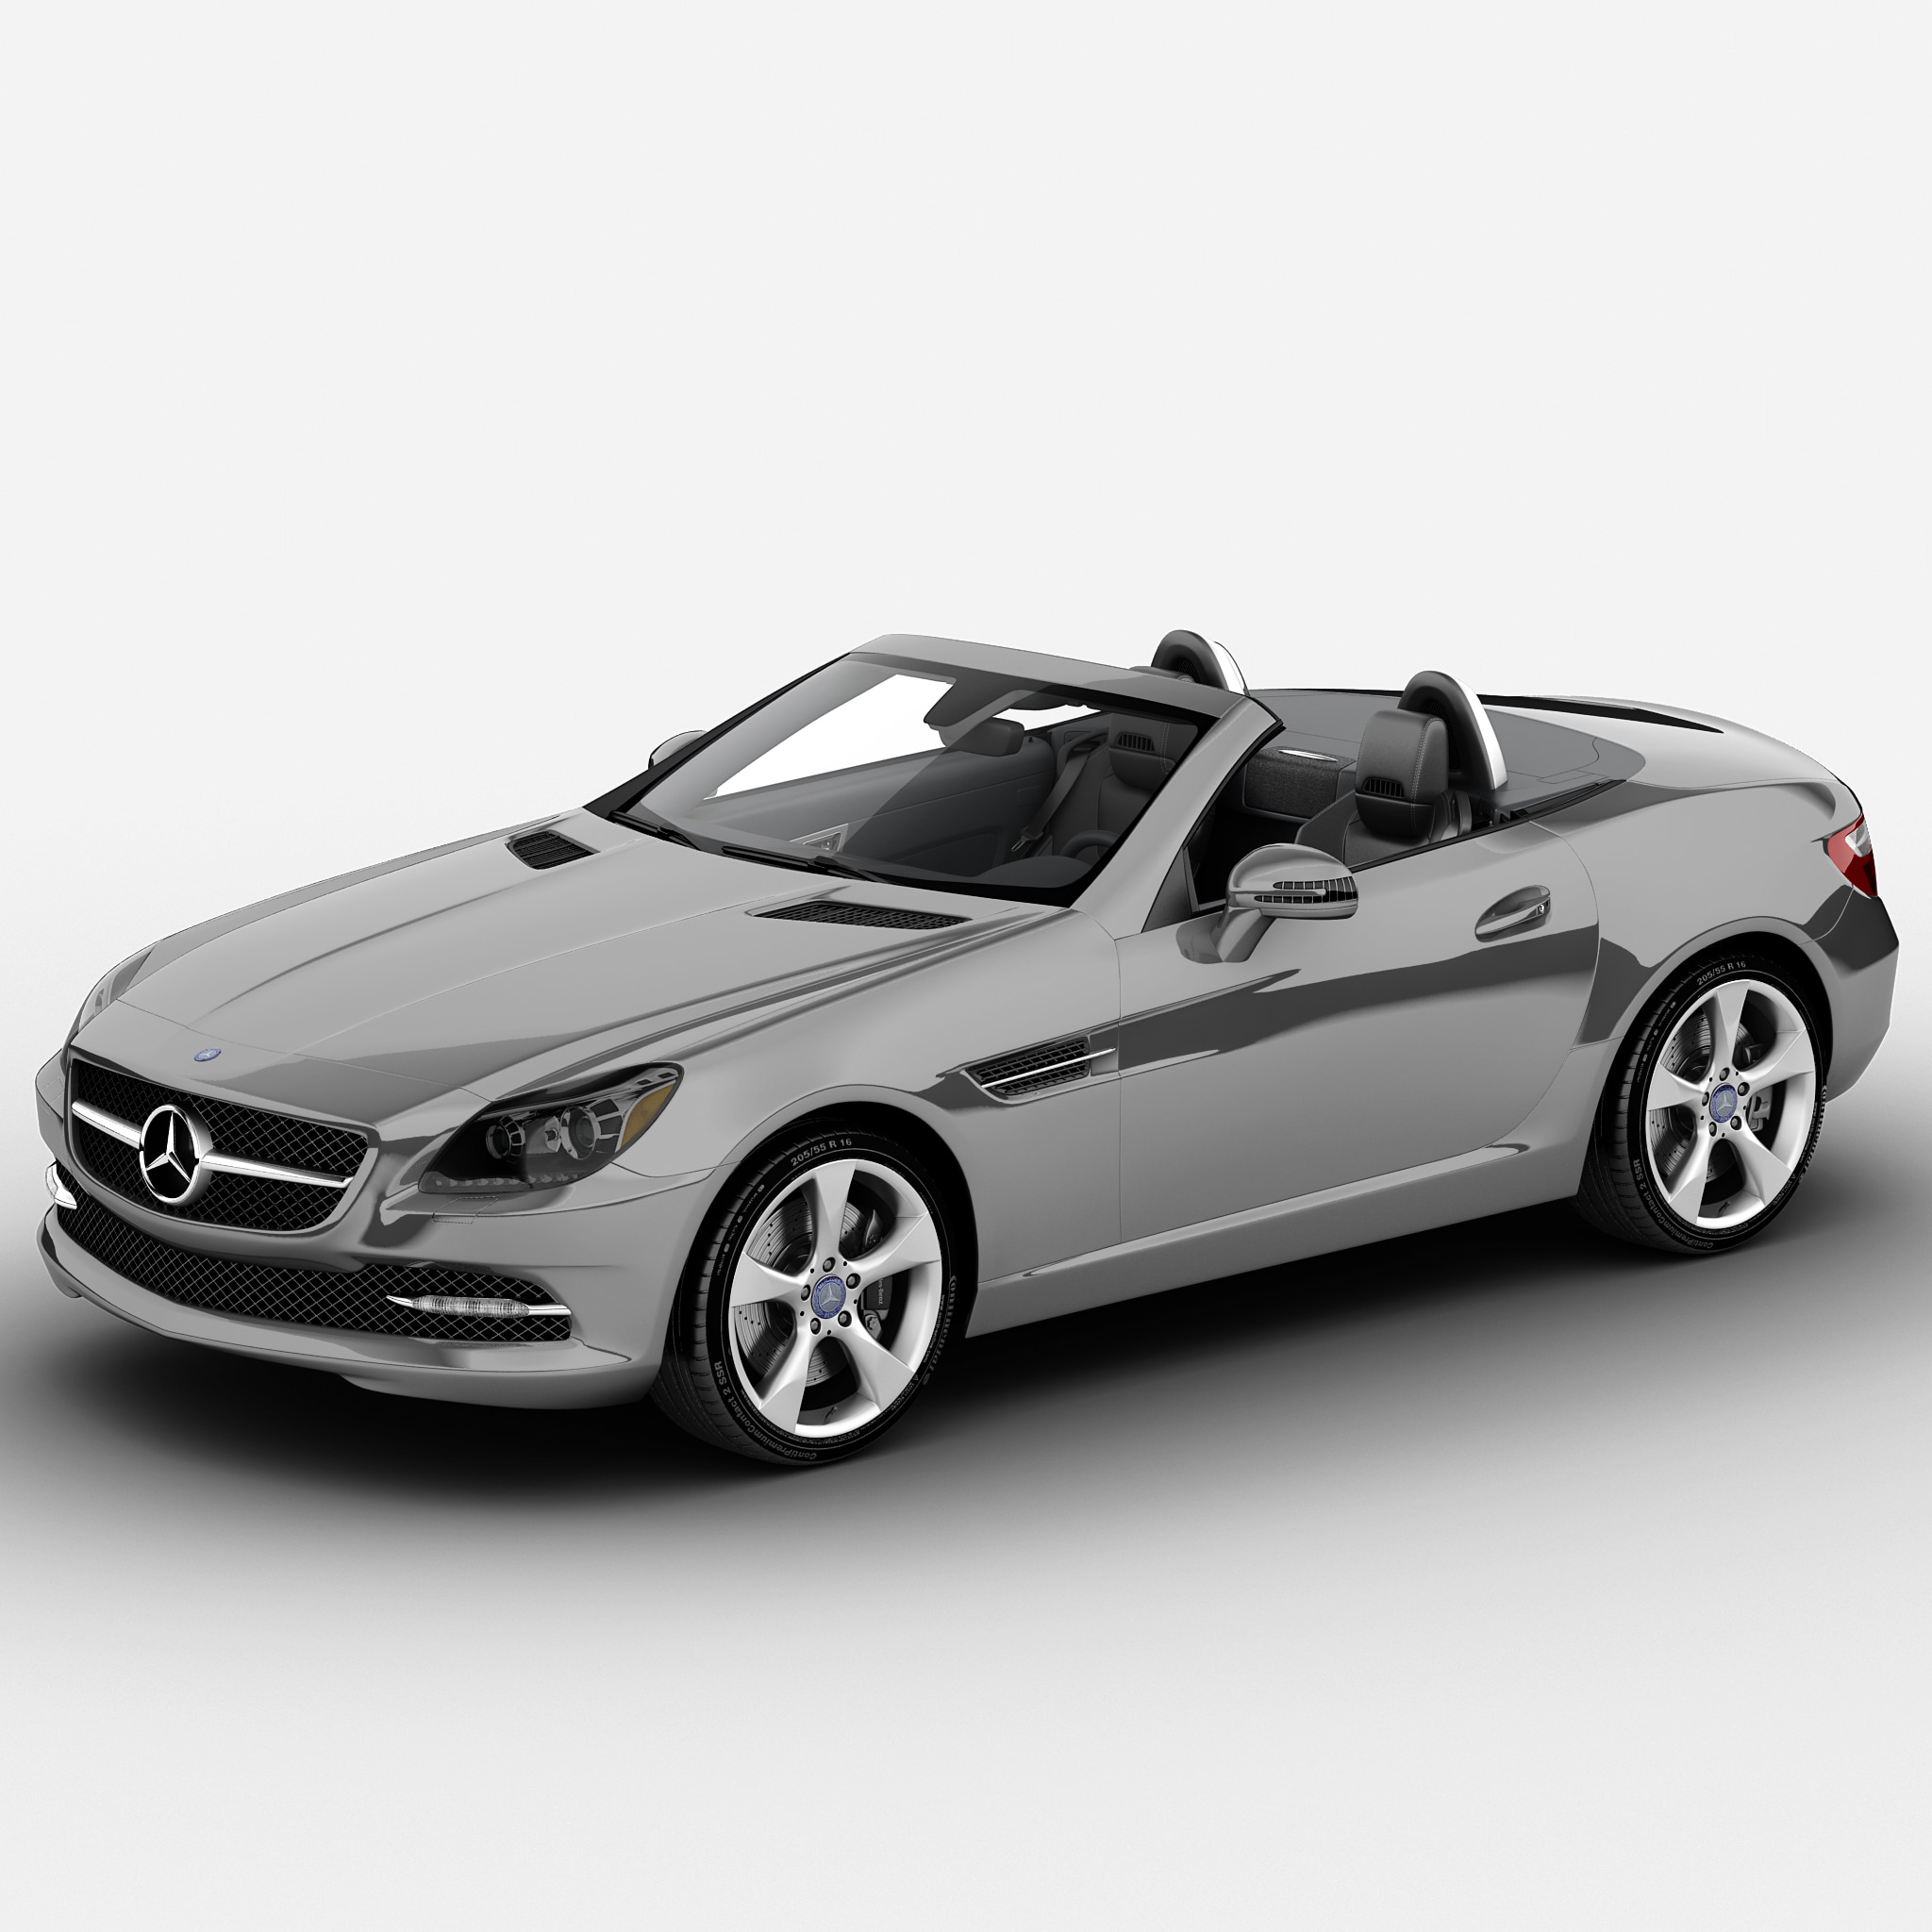 Mercedes Benz SLK Roadster 2013_2.jpg